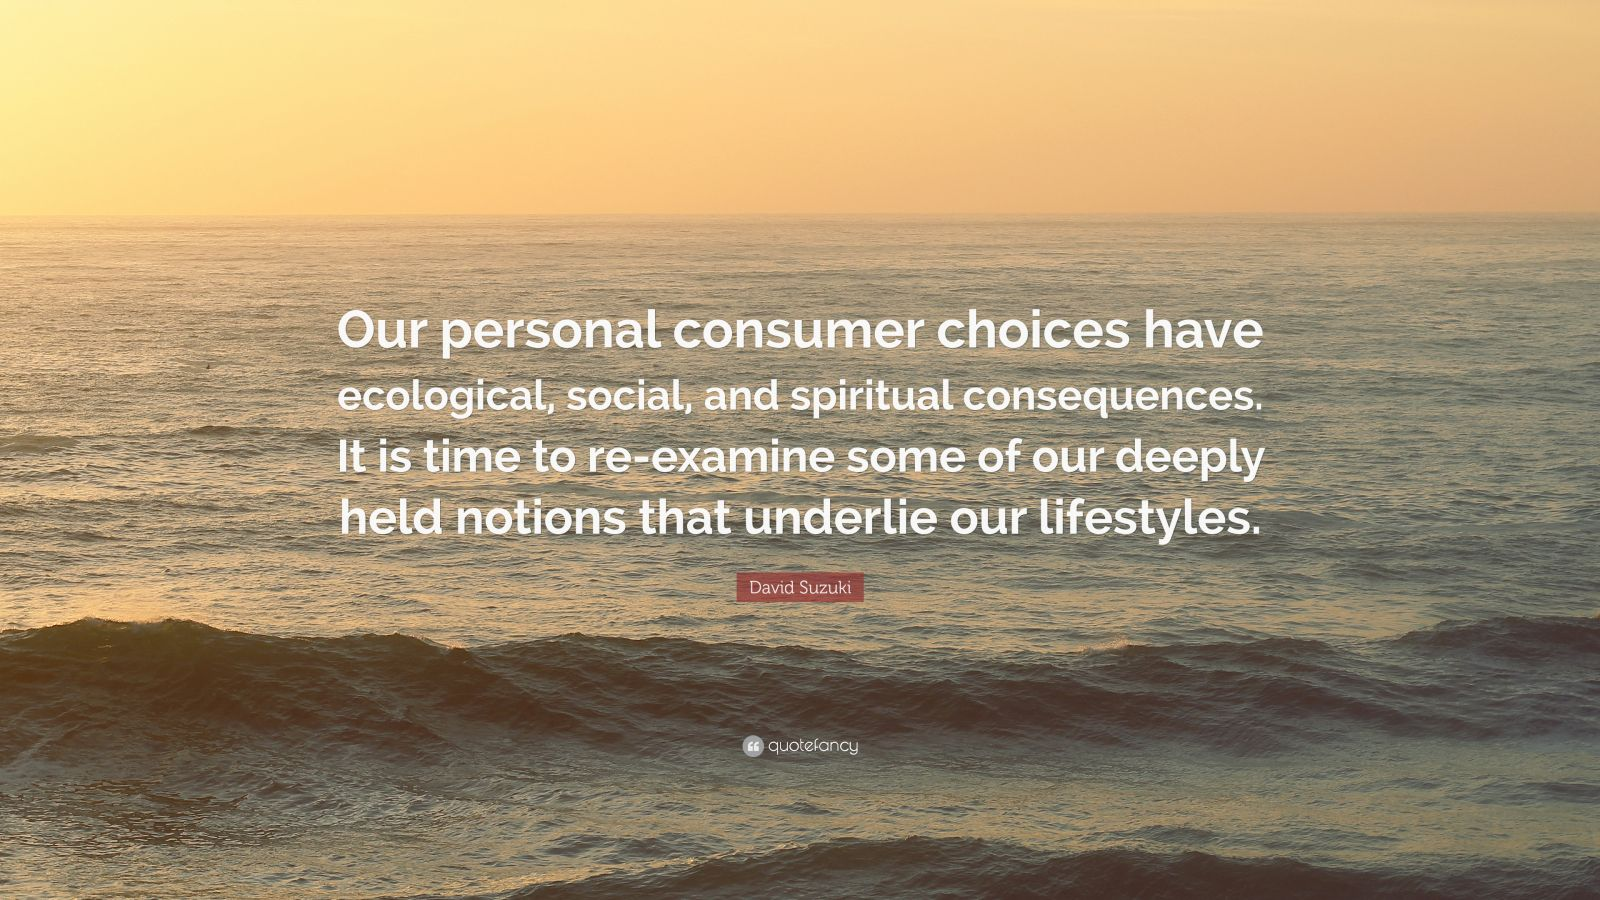 """David Suzuki Quote: """"Our personal consumer choices have ecological, social, and spiritual consequences. It is time to re-examine some of our deeply held notions that underlie our lifestyles."""""""